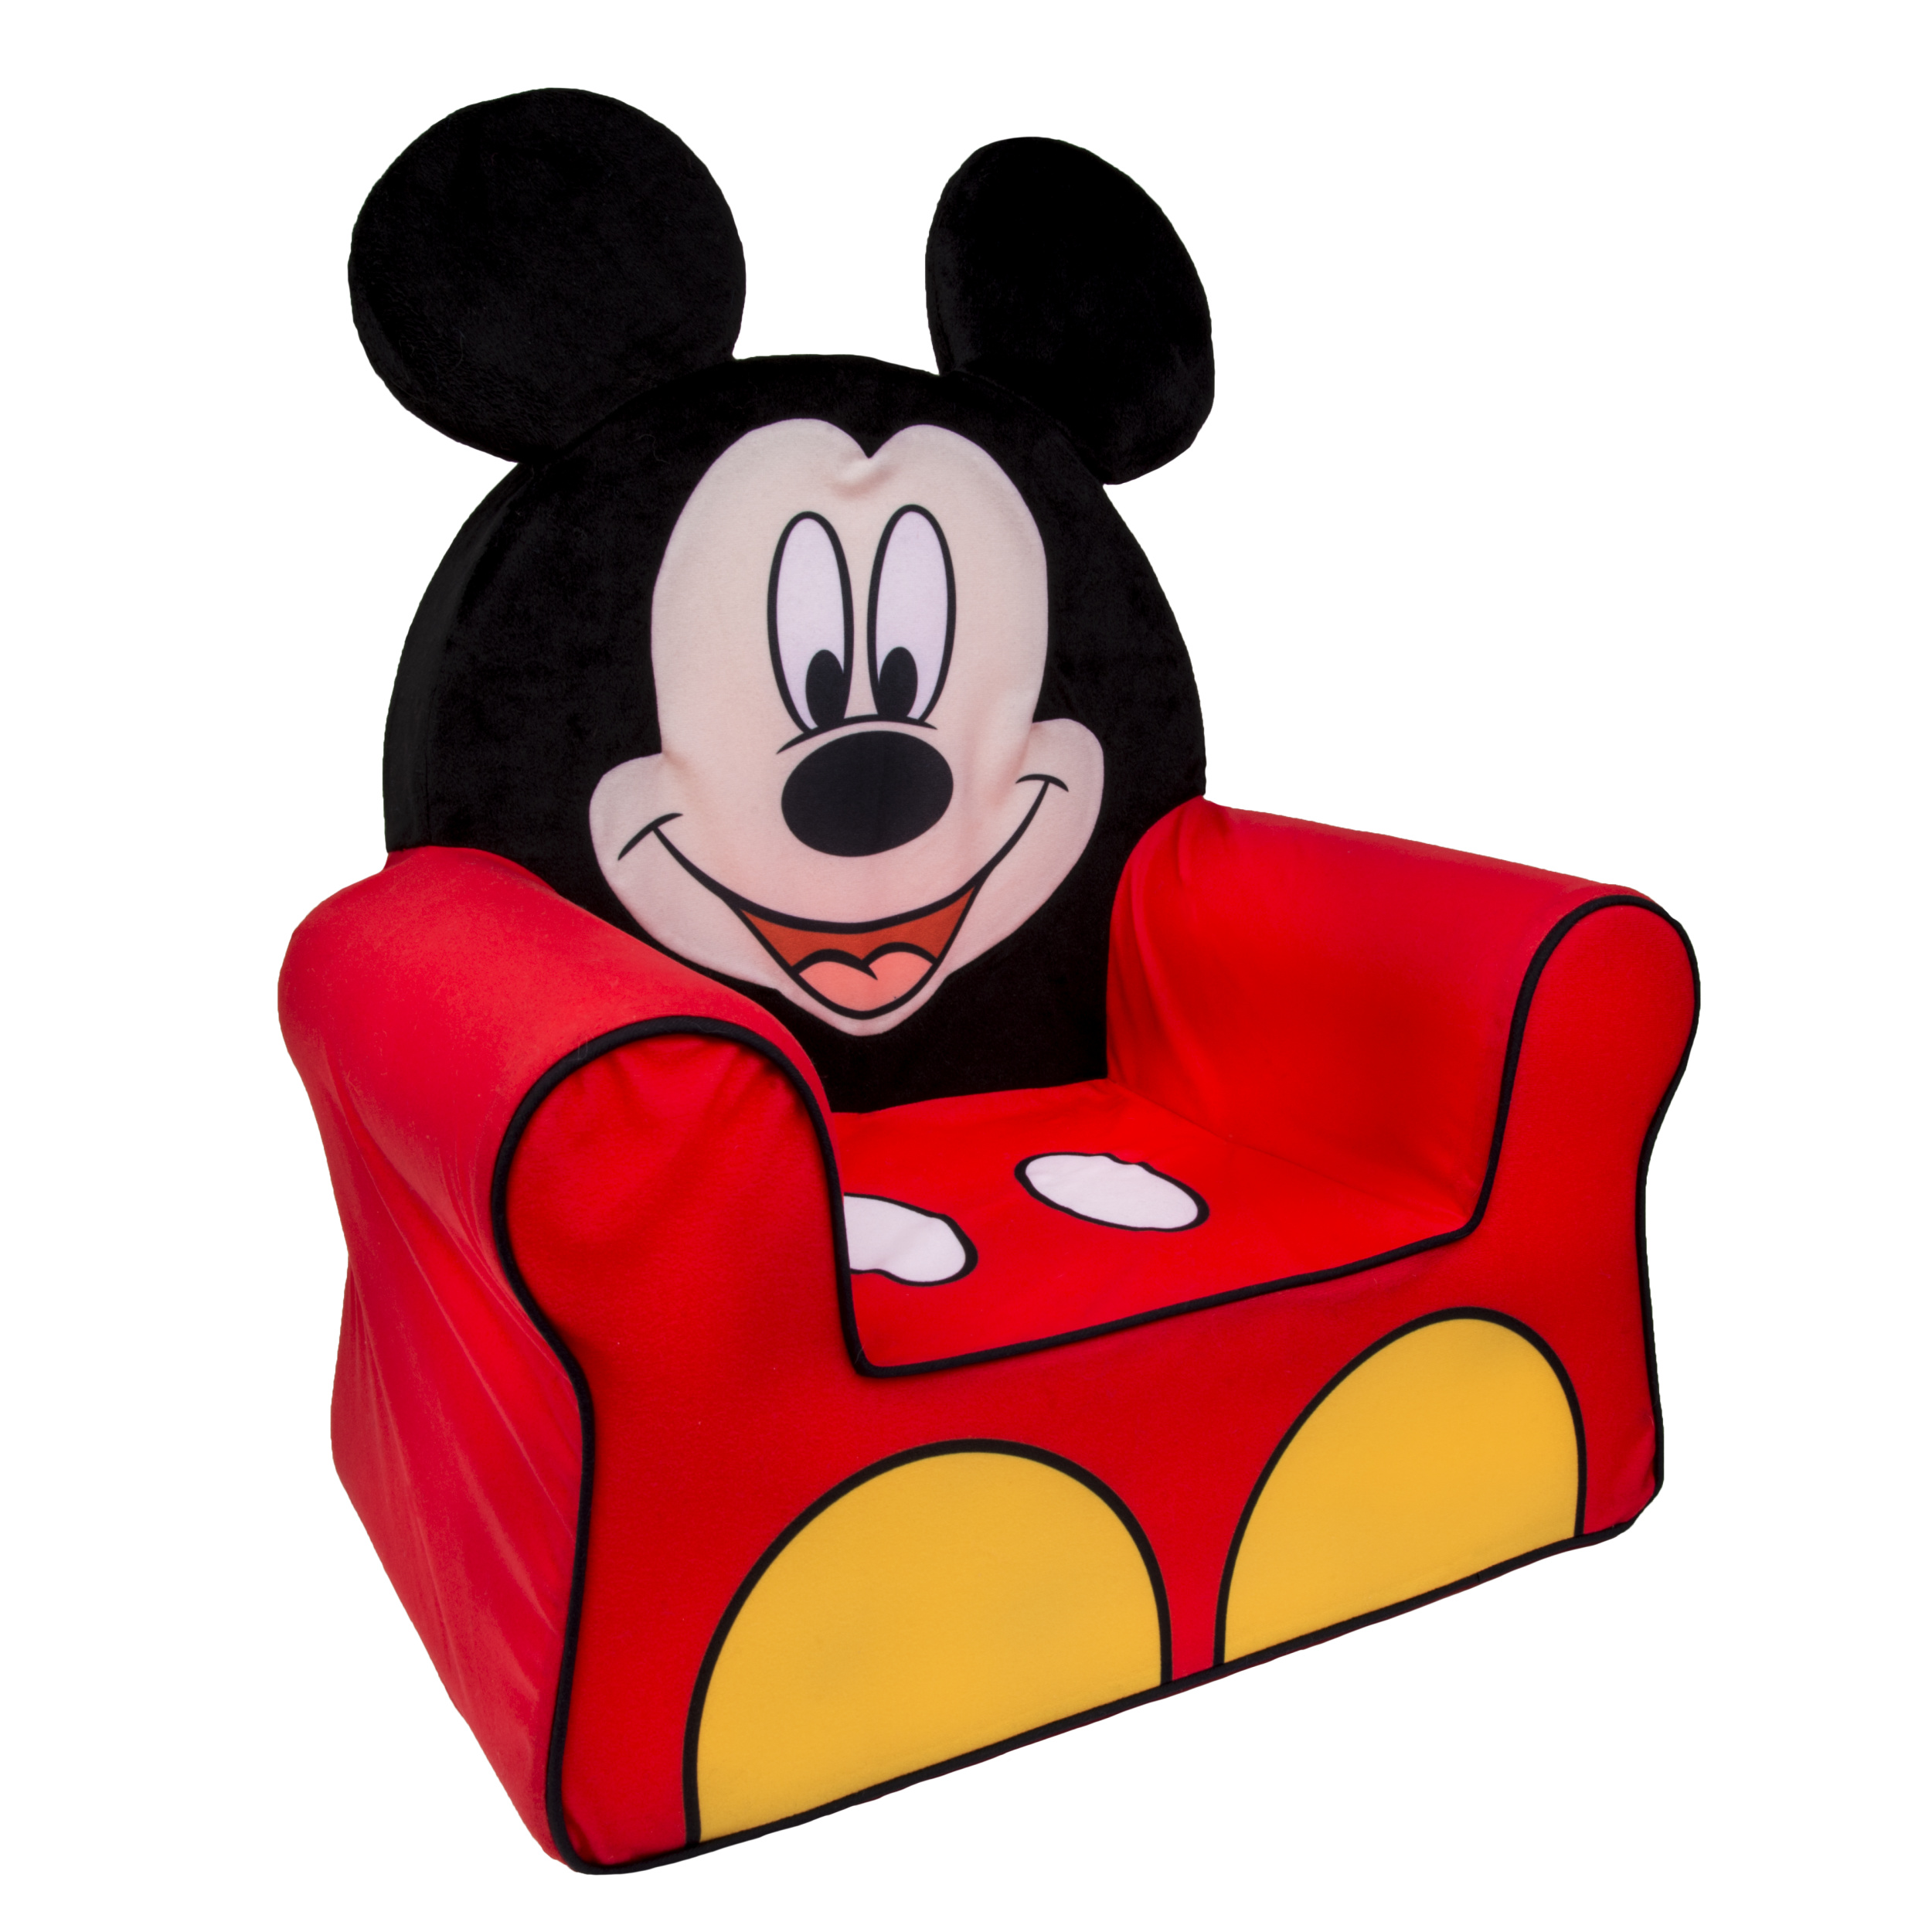 Marshmallow Furniture - Childrenu0027s Foam Mickey Mouse Comfy Chair by Spin Master - Walmart.com  sc 1 st  Walmart & Marshmallow Furniture - Childrenu0027s Foam Mickey Mouse Comfy Chair by ...